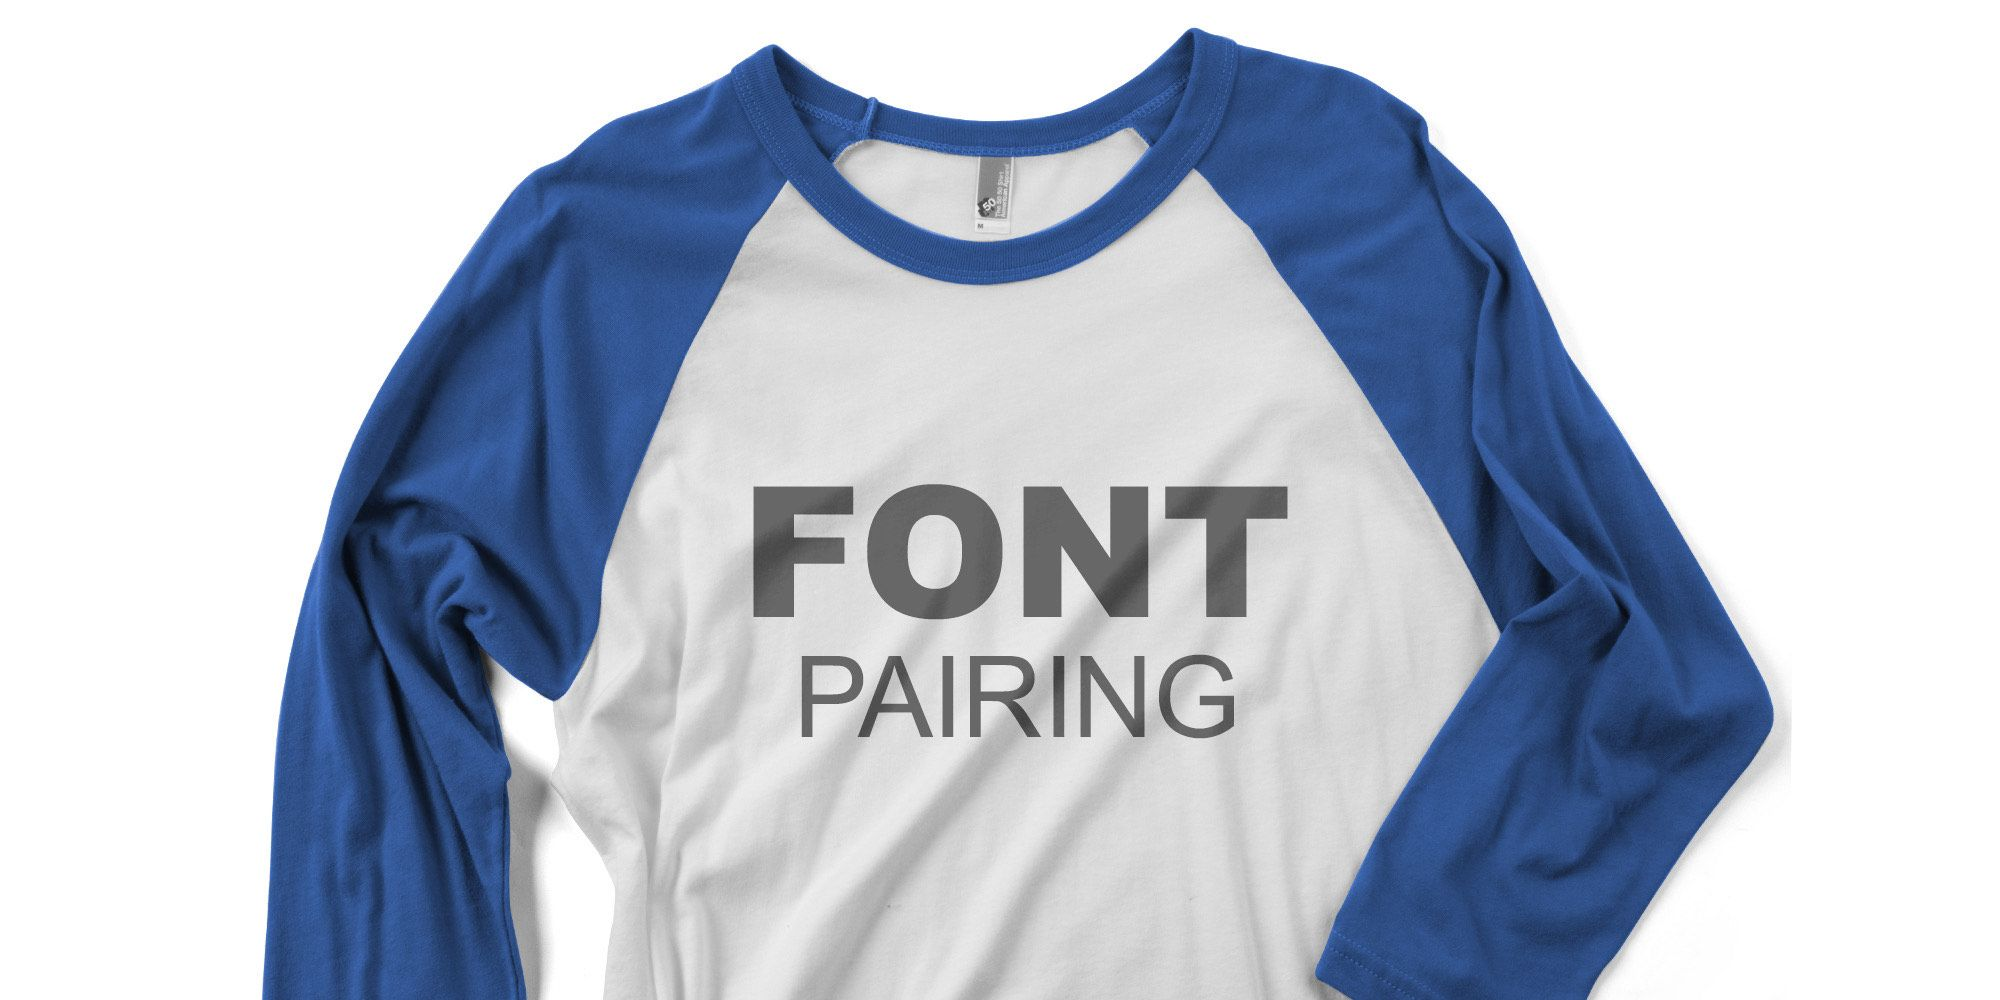 The Ultimate Guide To Font Pairing In T-Shirt Design